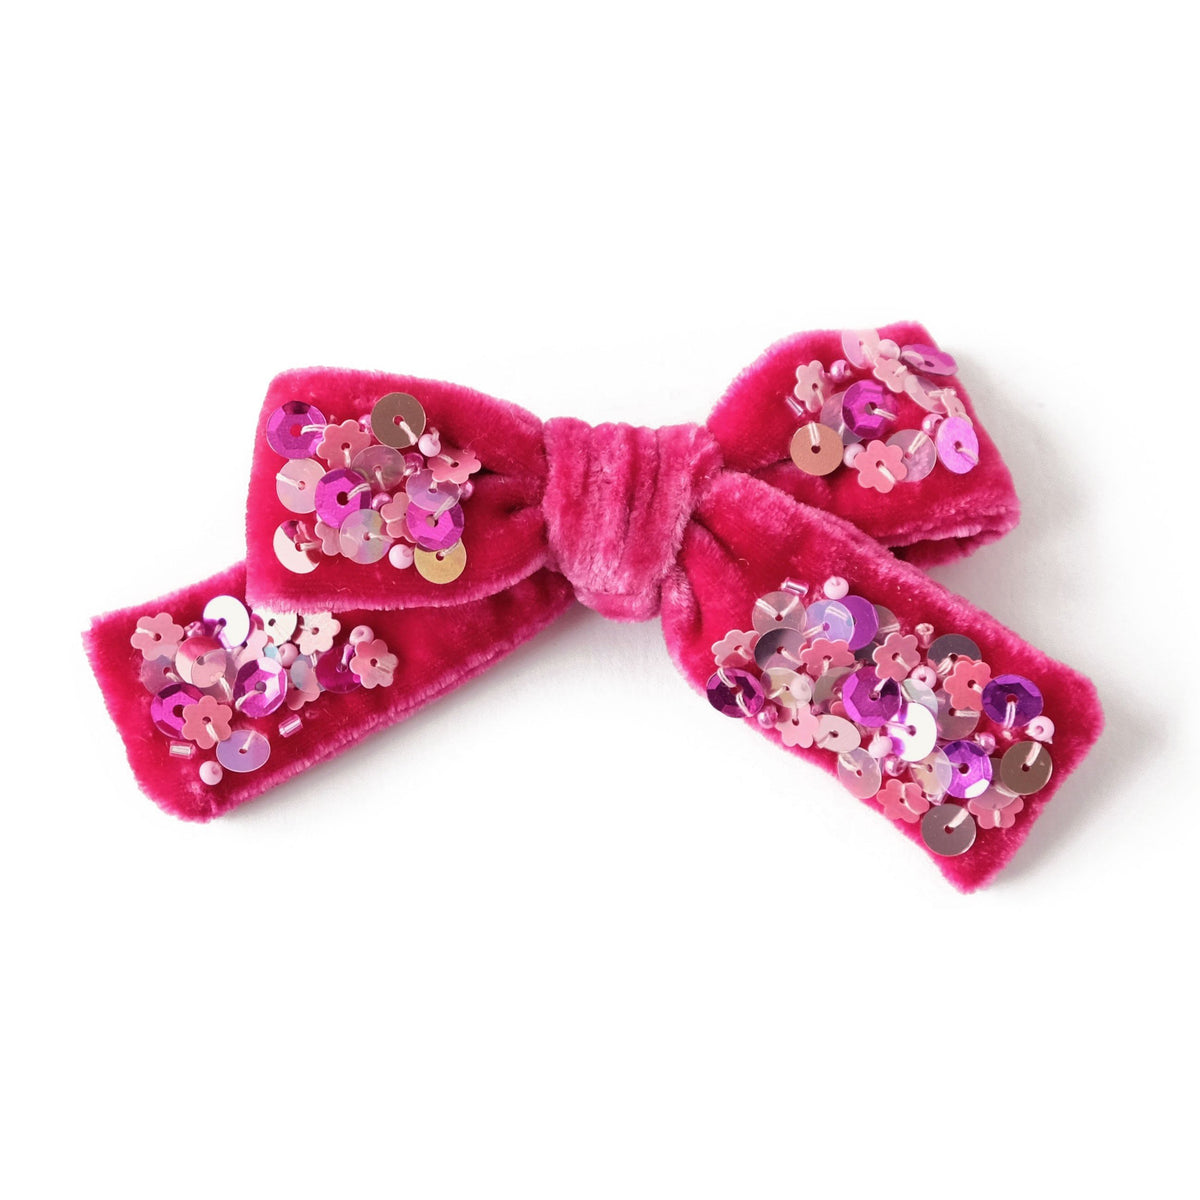 Silk velvet hair bow with sequin in pomegranate pink.